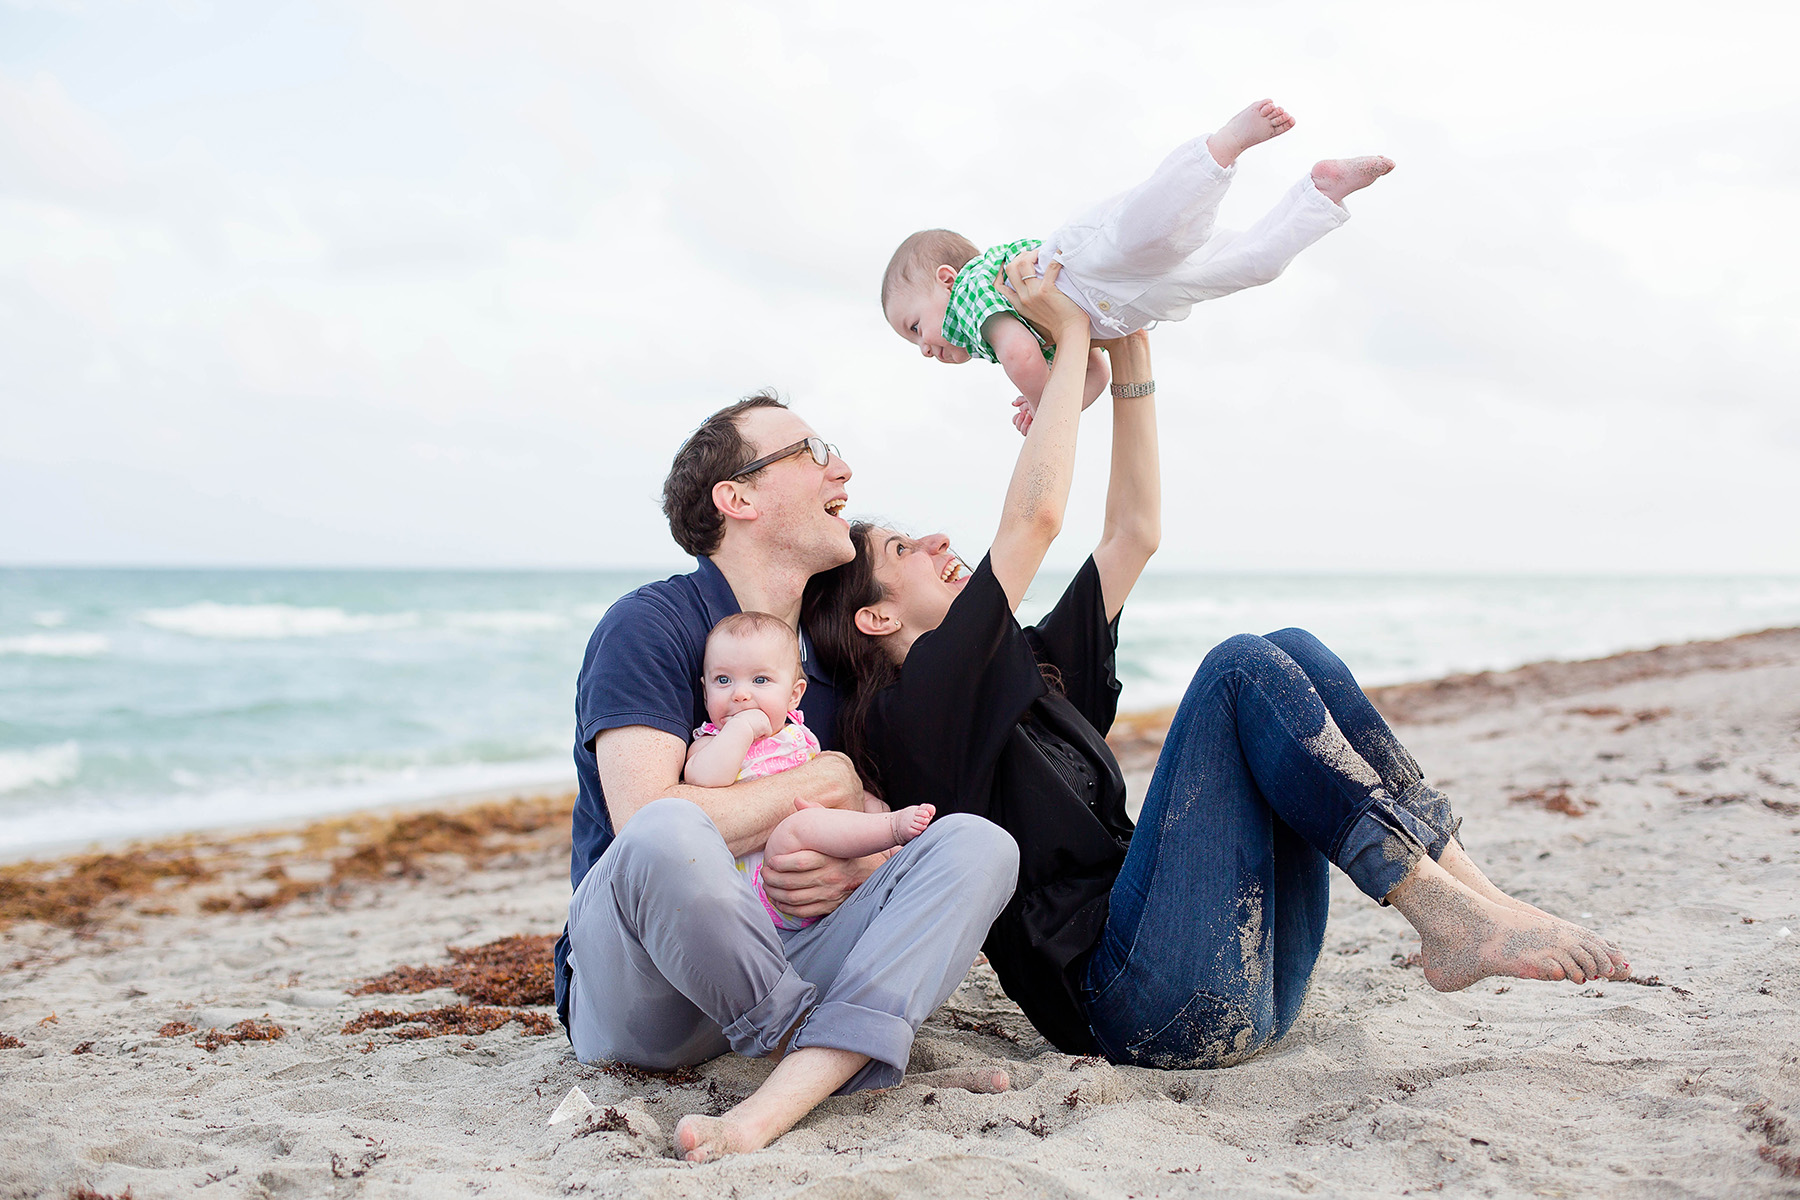 south-florida-family-portrait-twins-professional-beach-love-laughter-memories-steph-lynn-photo.jpg